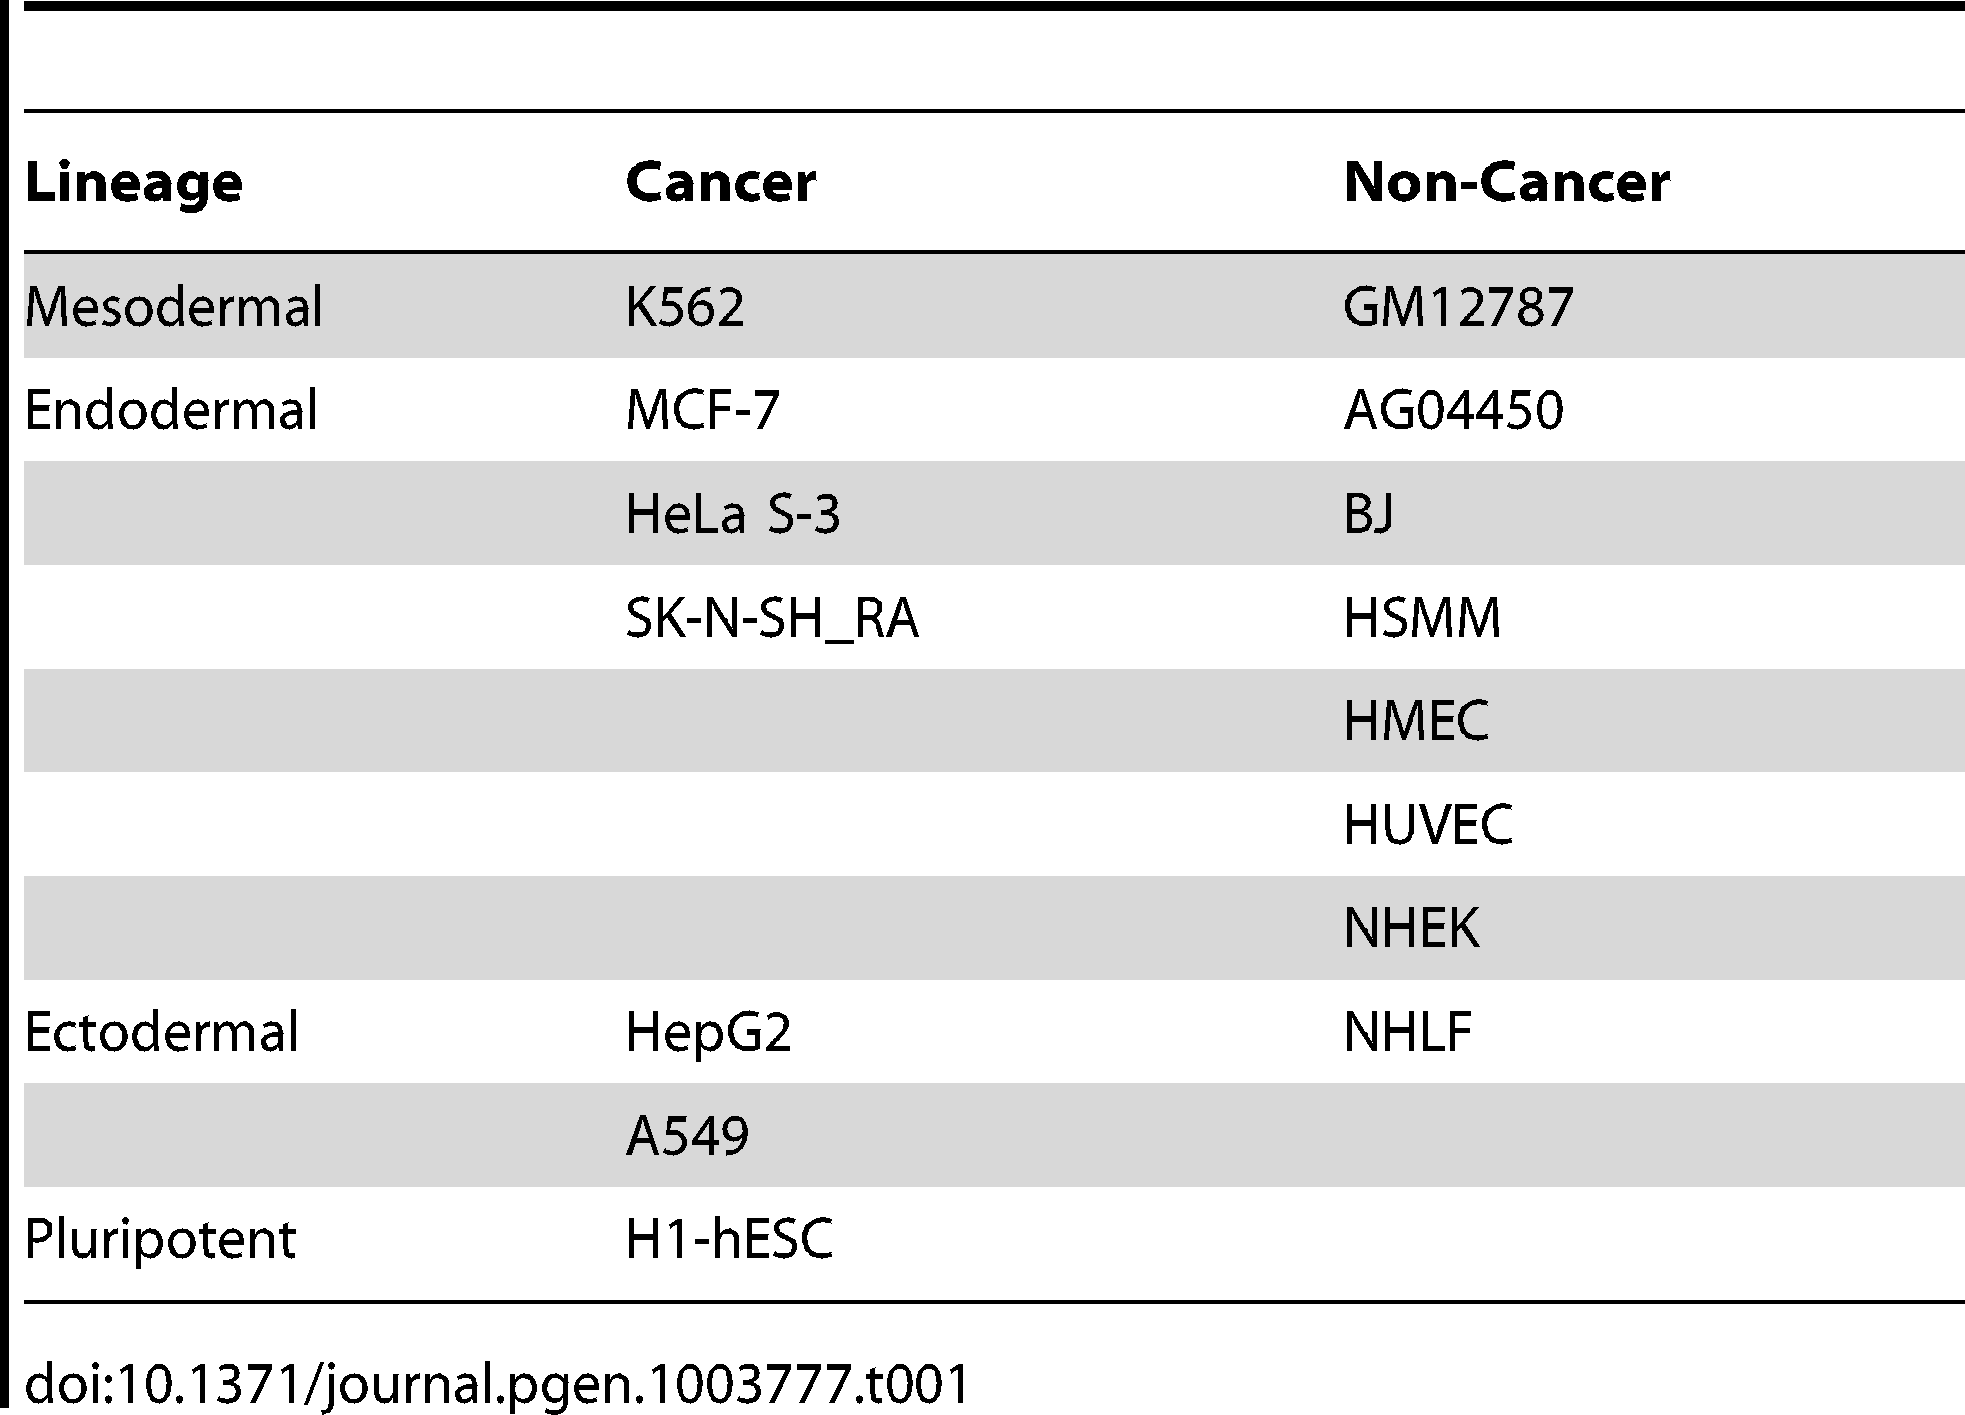 ENCODE cell types analyzed by lineage and cancer status.